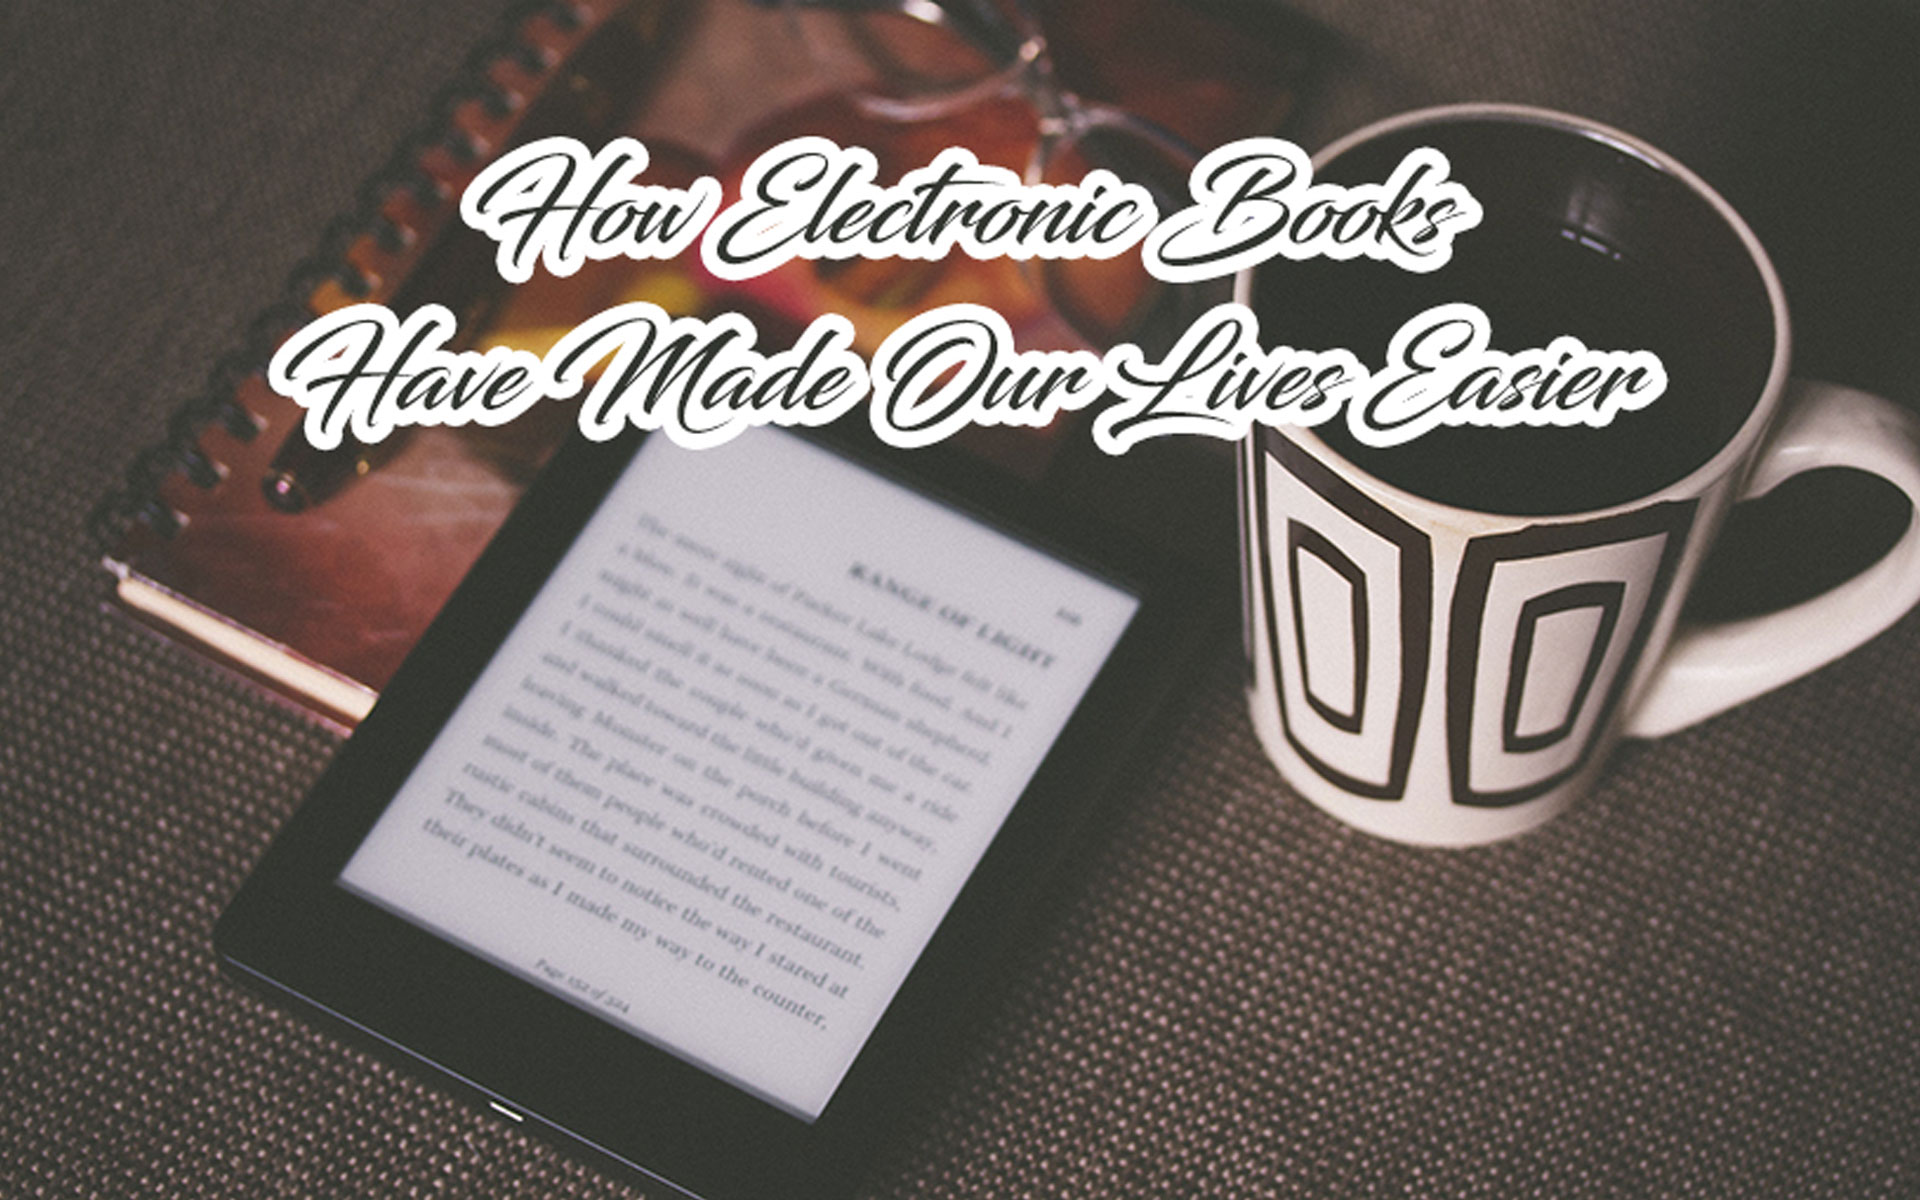 How Electronic Books Have Made Our Lives Easier